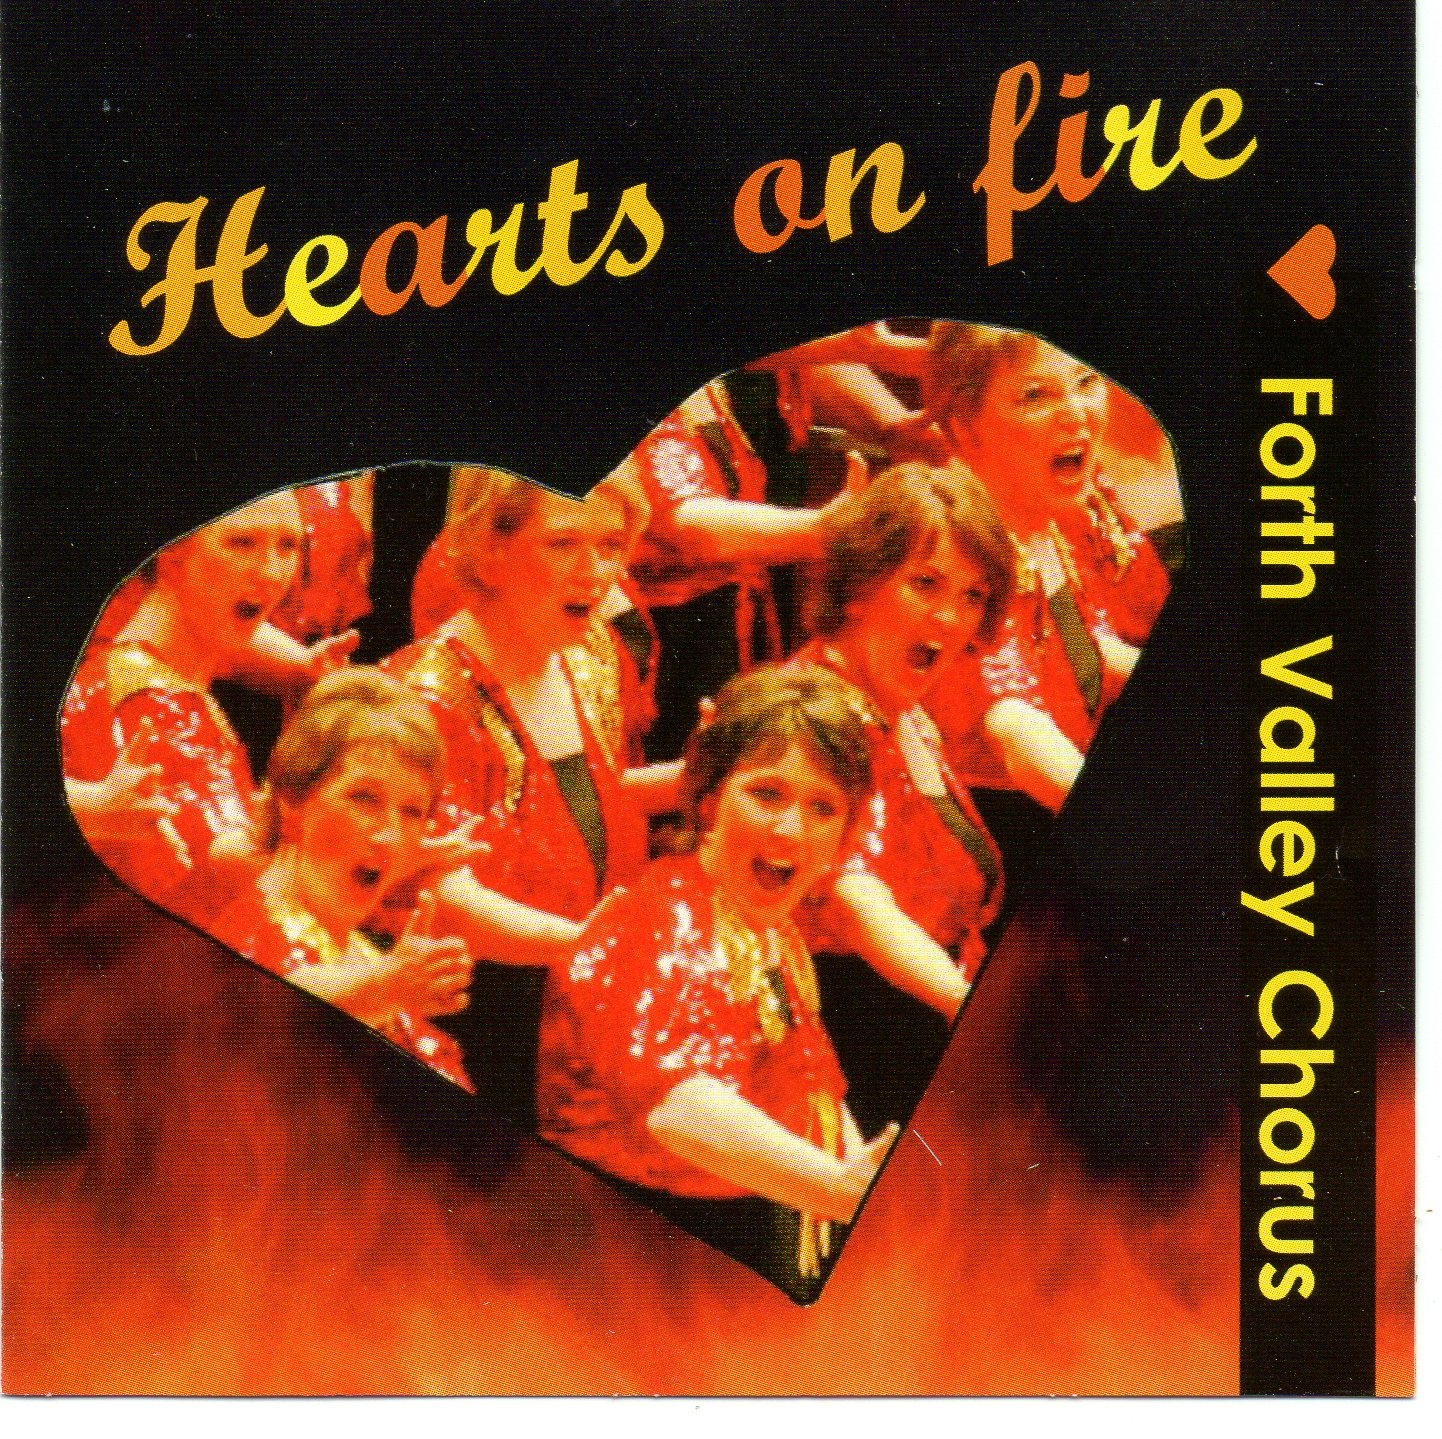 Hearts on Fire CD cover